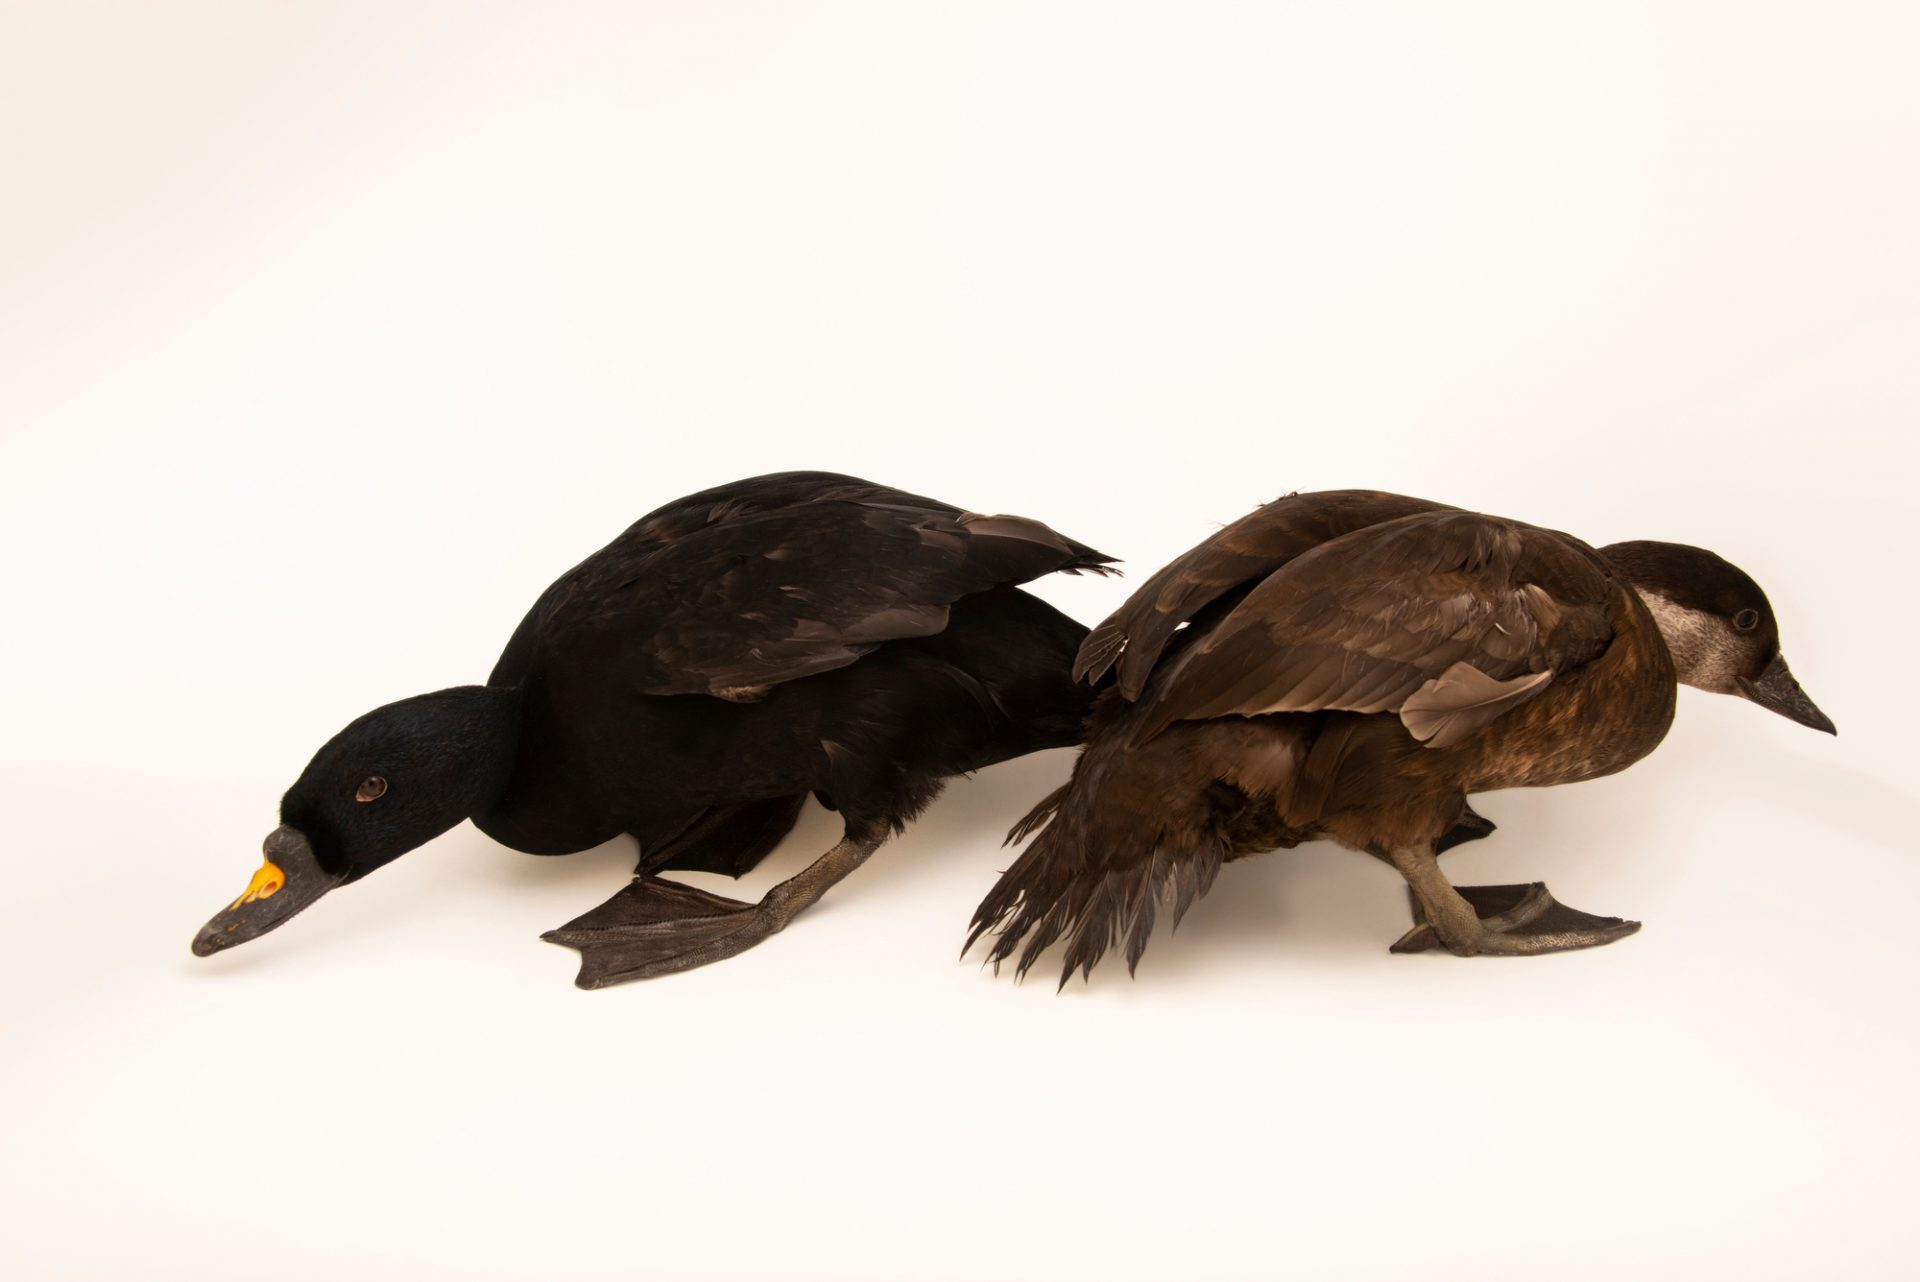 Photo: Male and female common scoters (Melanitta nigra) at Monticello Center in Italy.